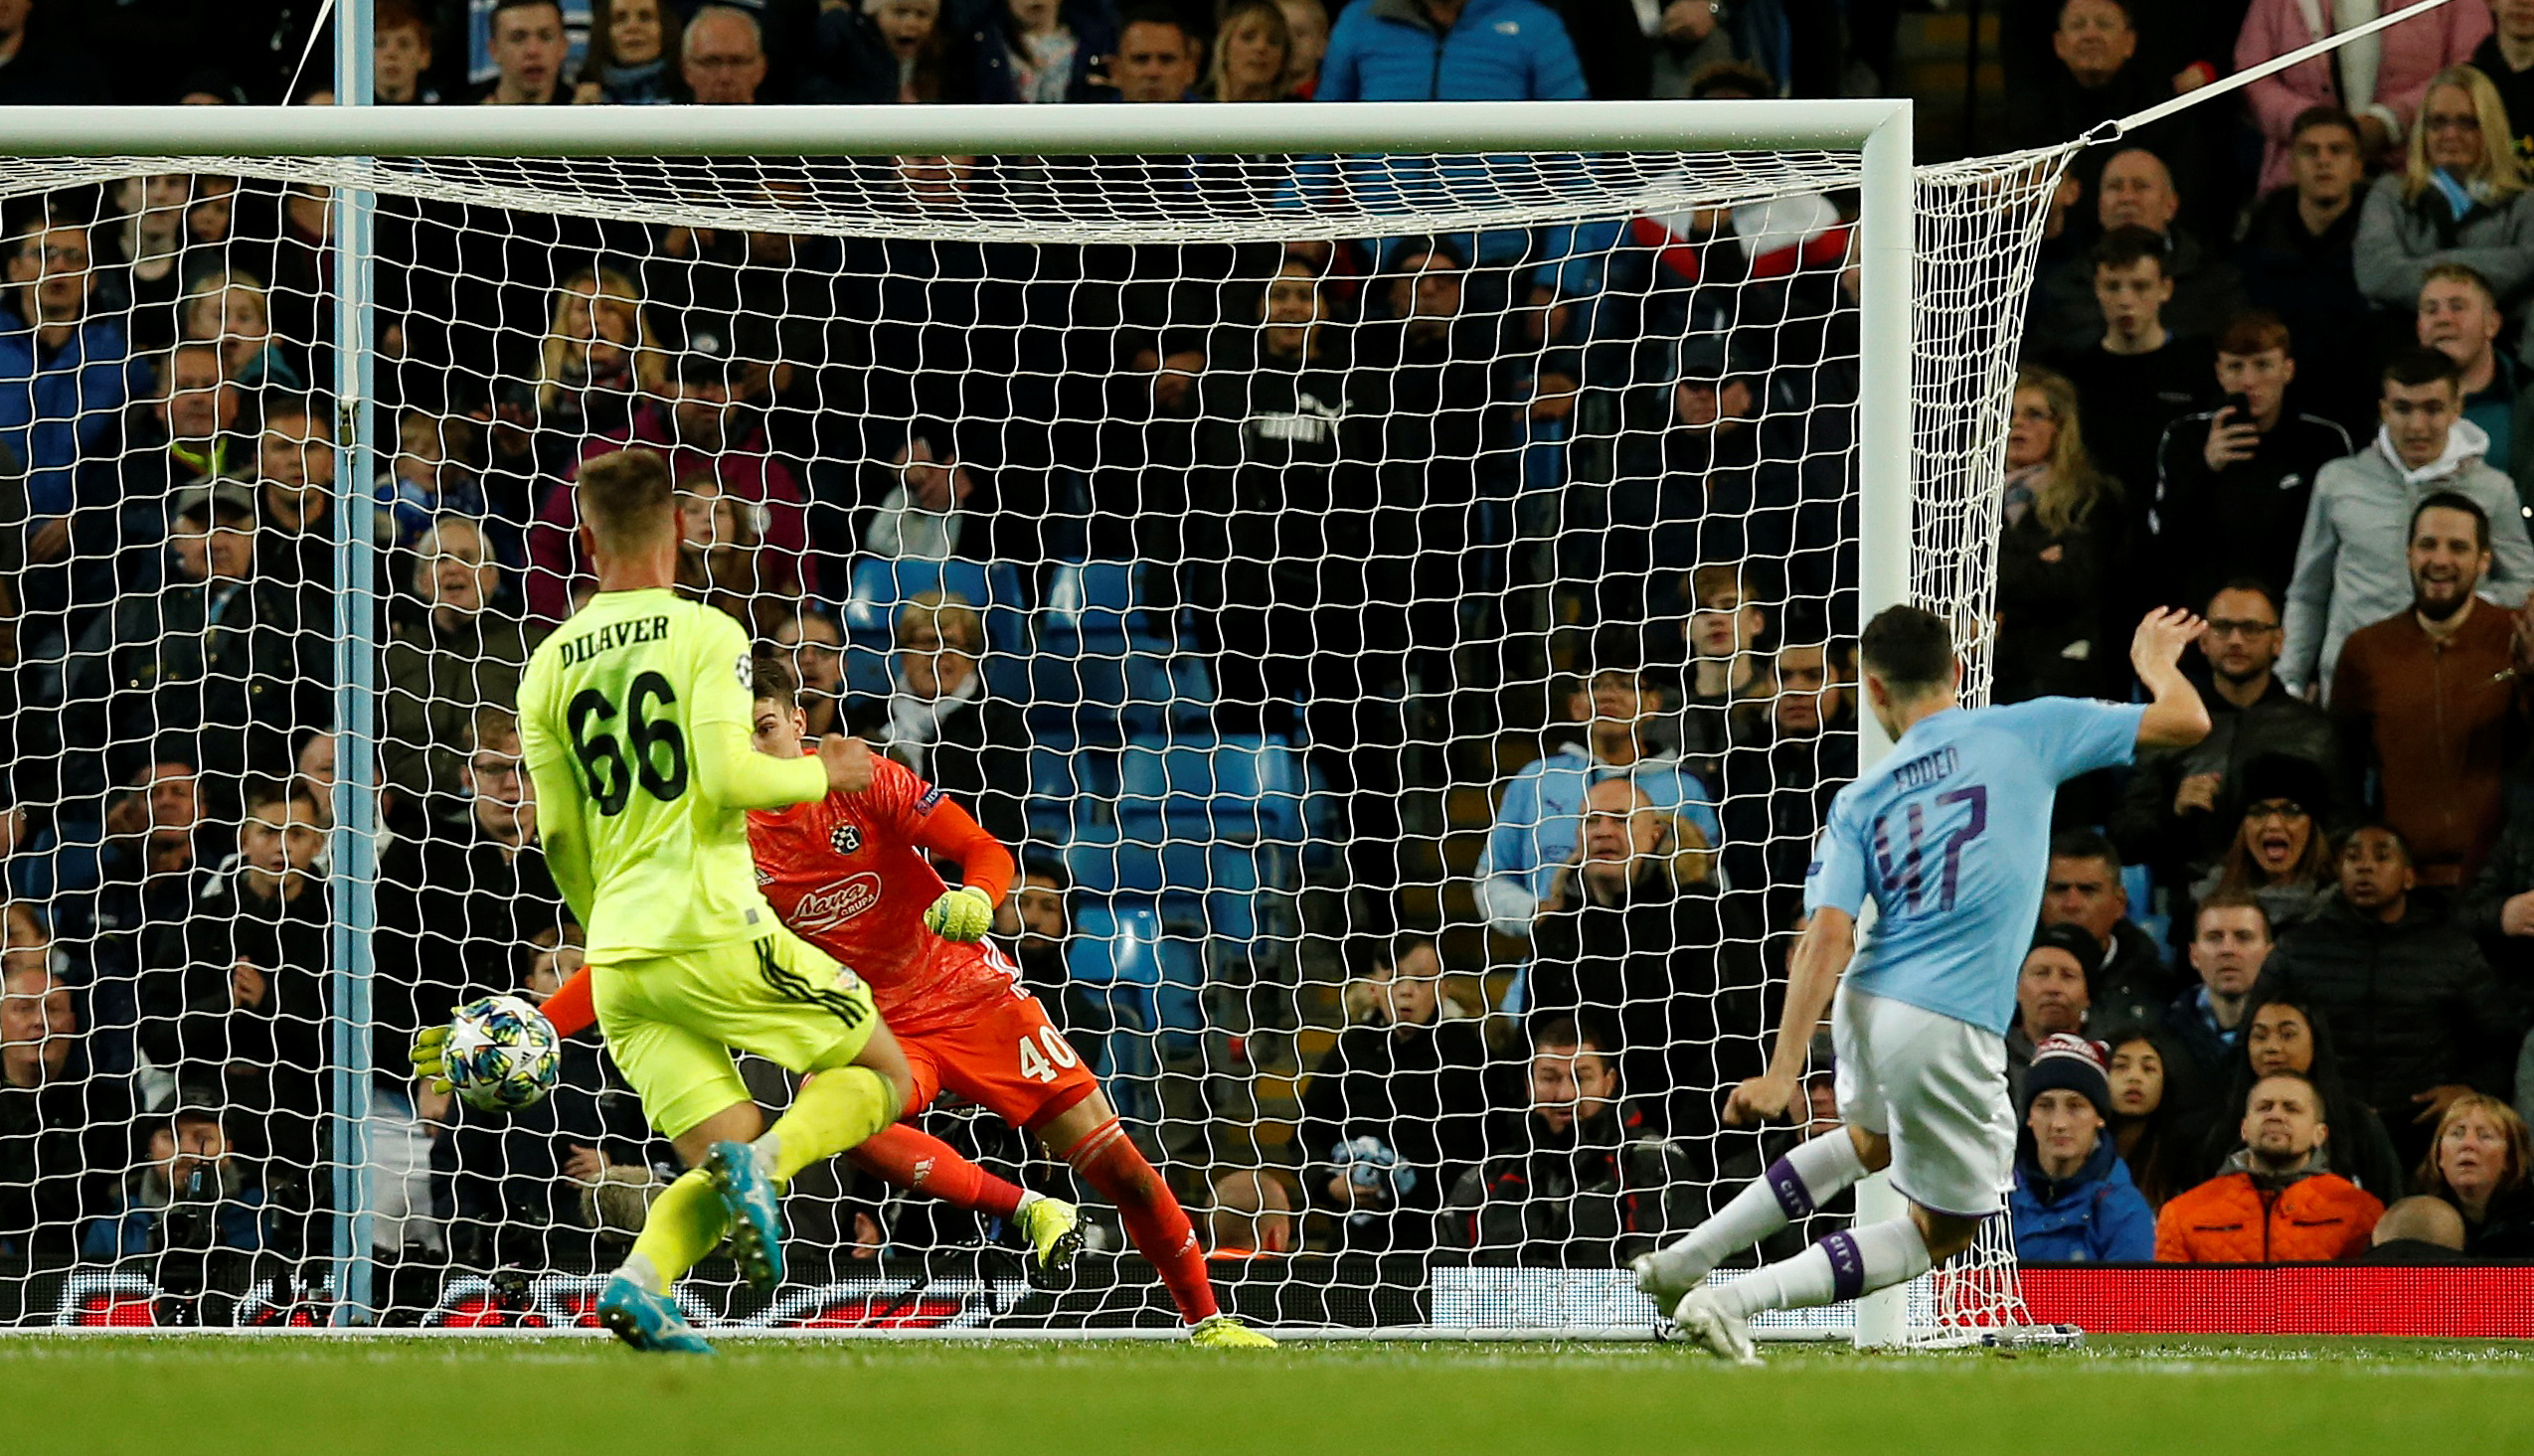 Soccer Football - Champions League - Group C - Manchester City v GNK Dinamo Zagreb - Etihad Stadium, Manchester, Britain - October 1, 2019  Manchester City's Phil Foden scores their second goal   REUTERS/Andrew Yates